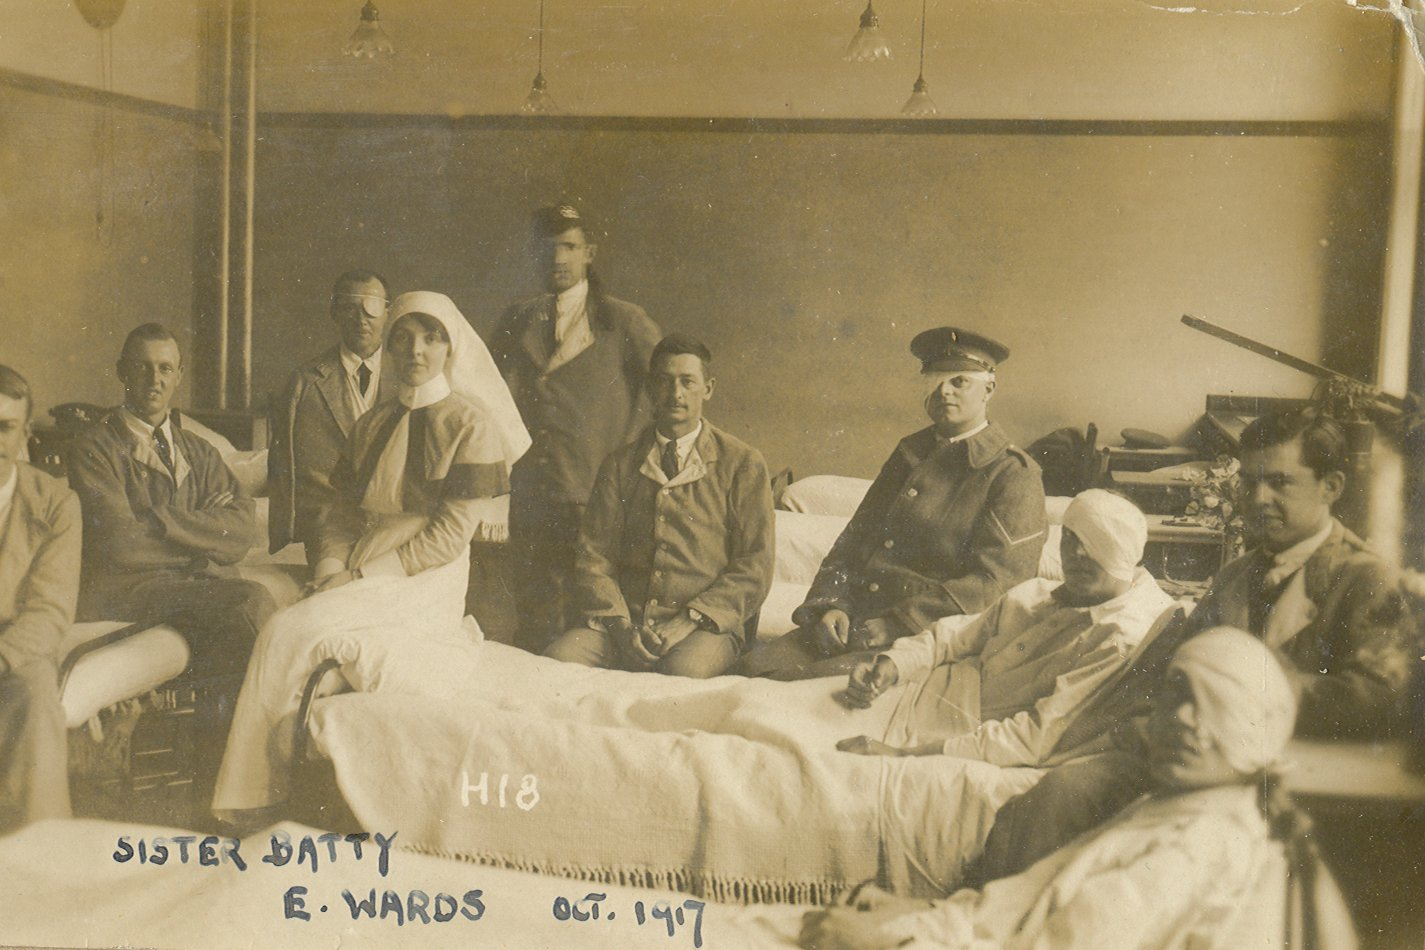 Sister Batty with patients at the Beckett Park military hospital